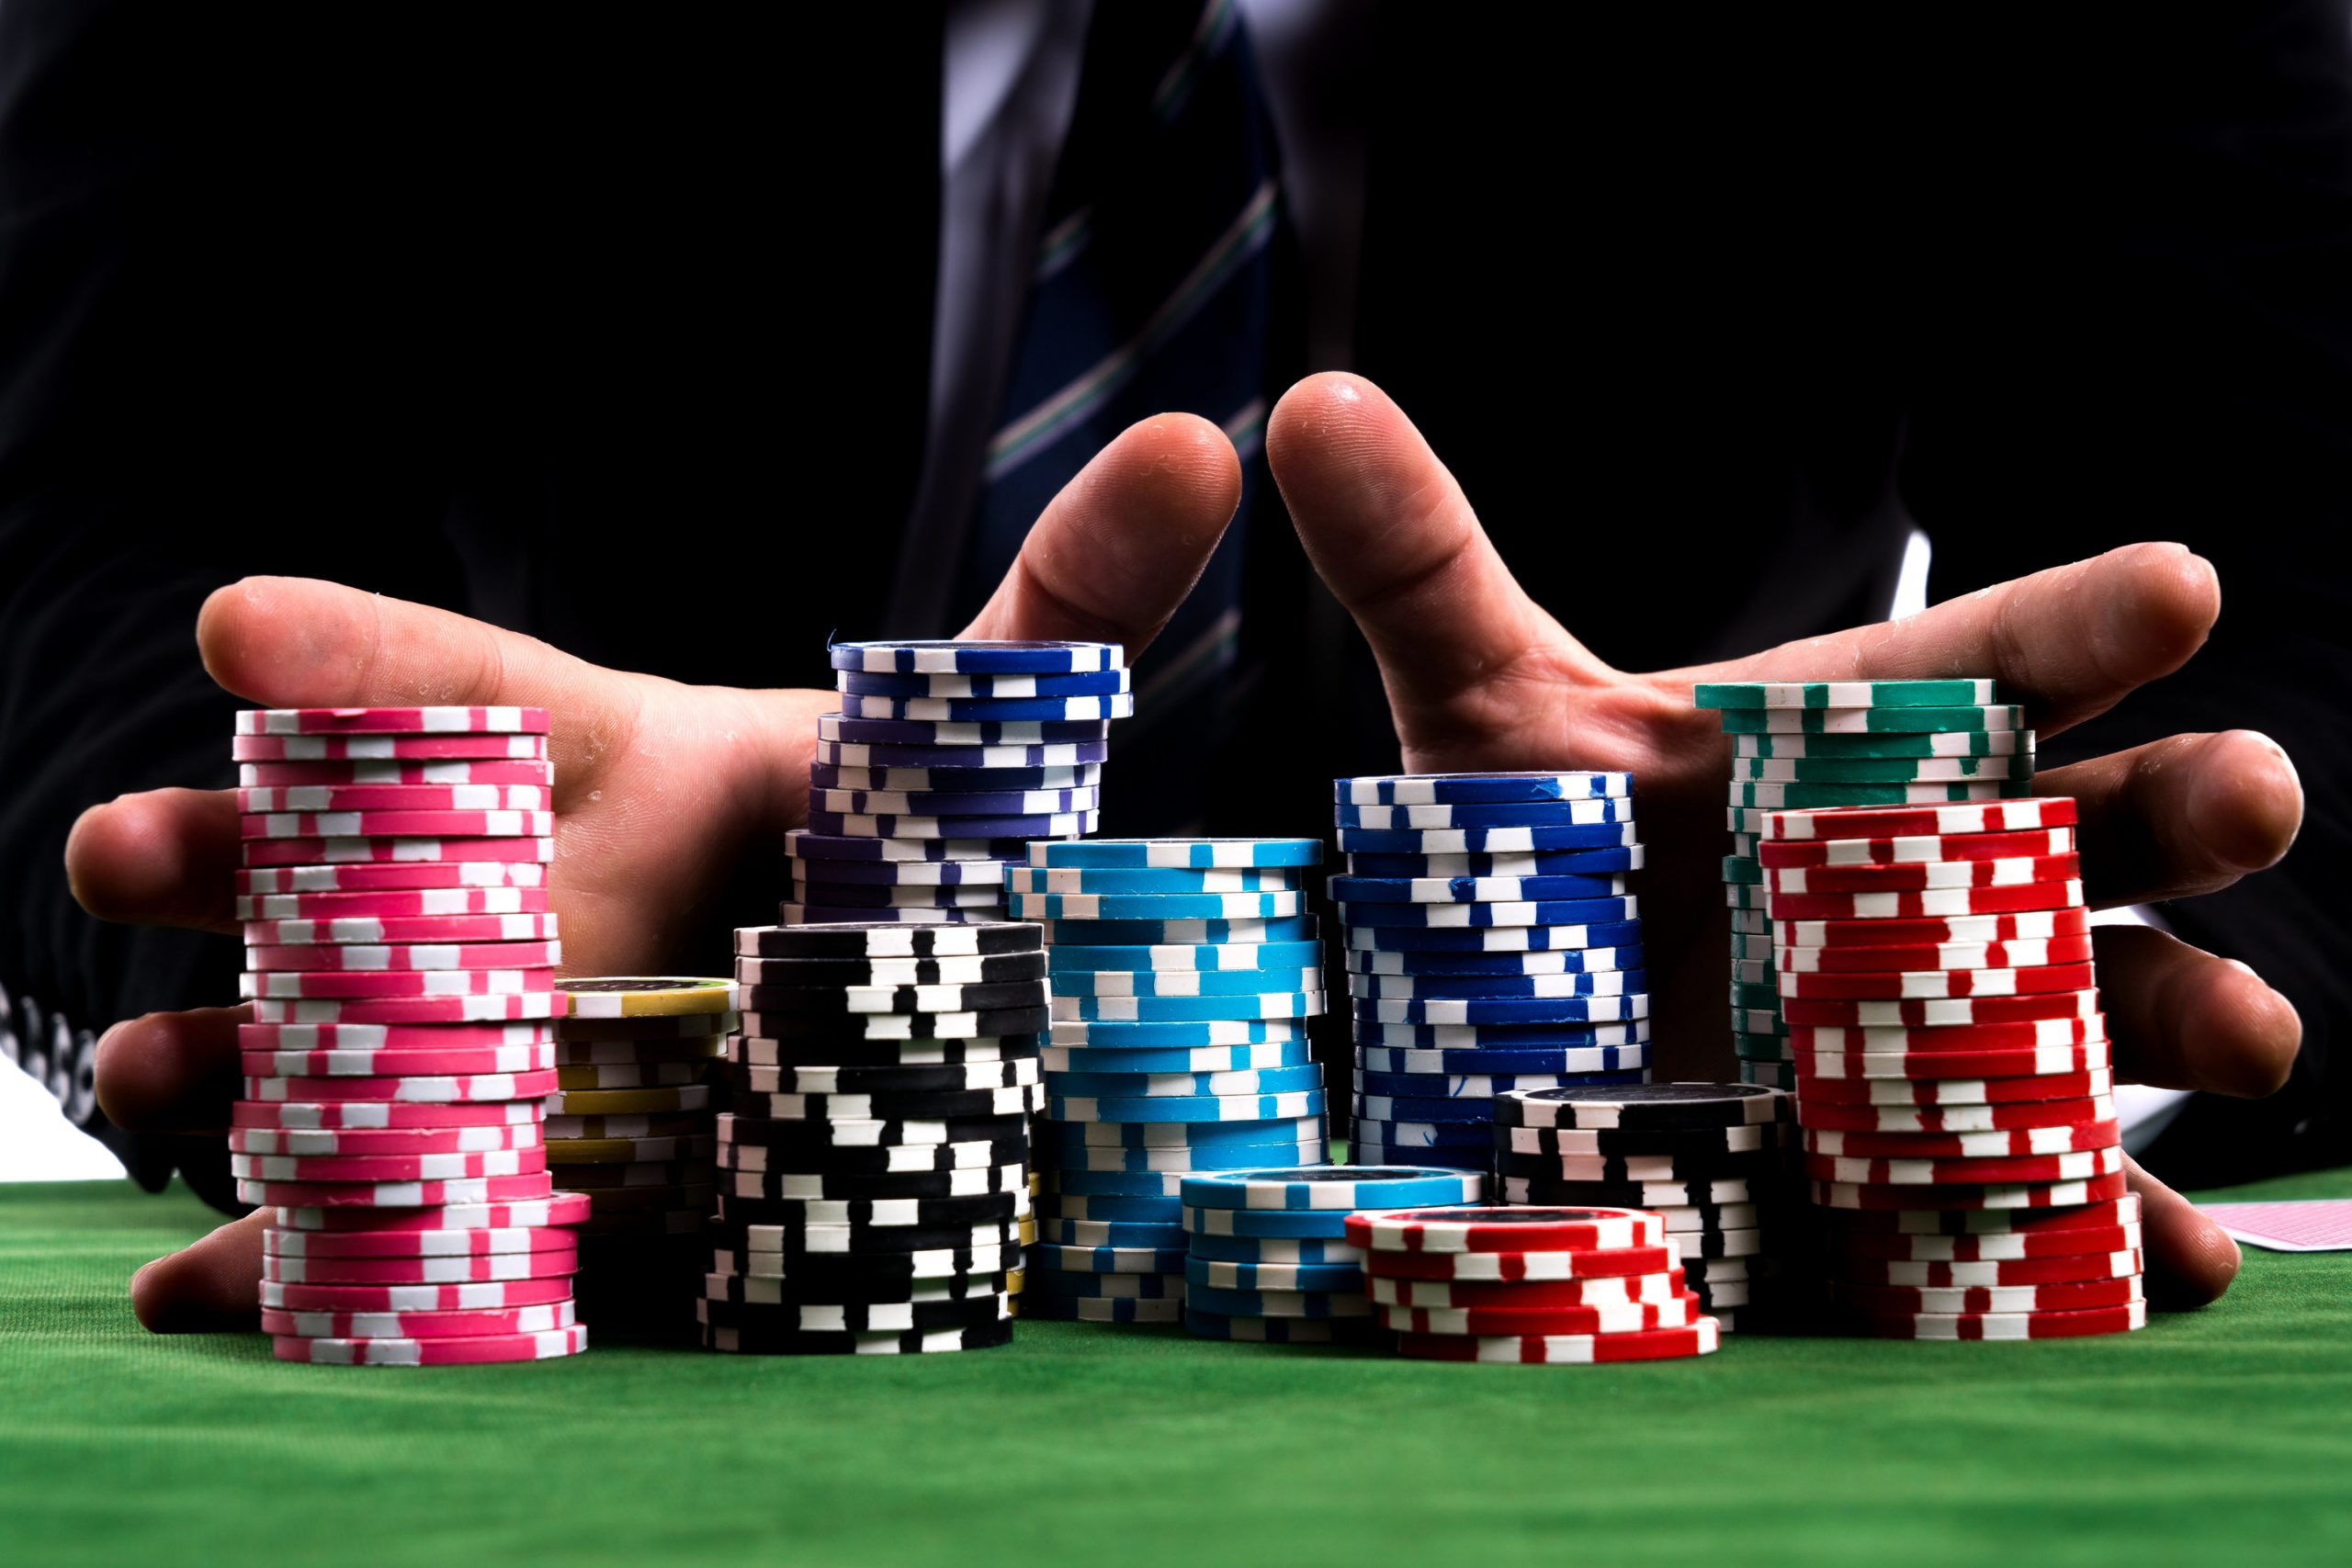 The Many Benefits You Can Get from Online Gambling